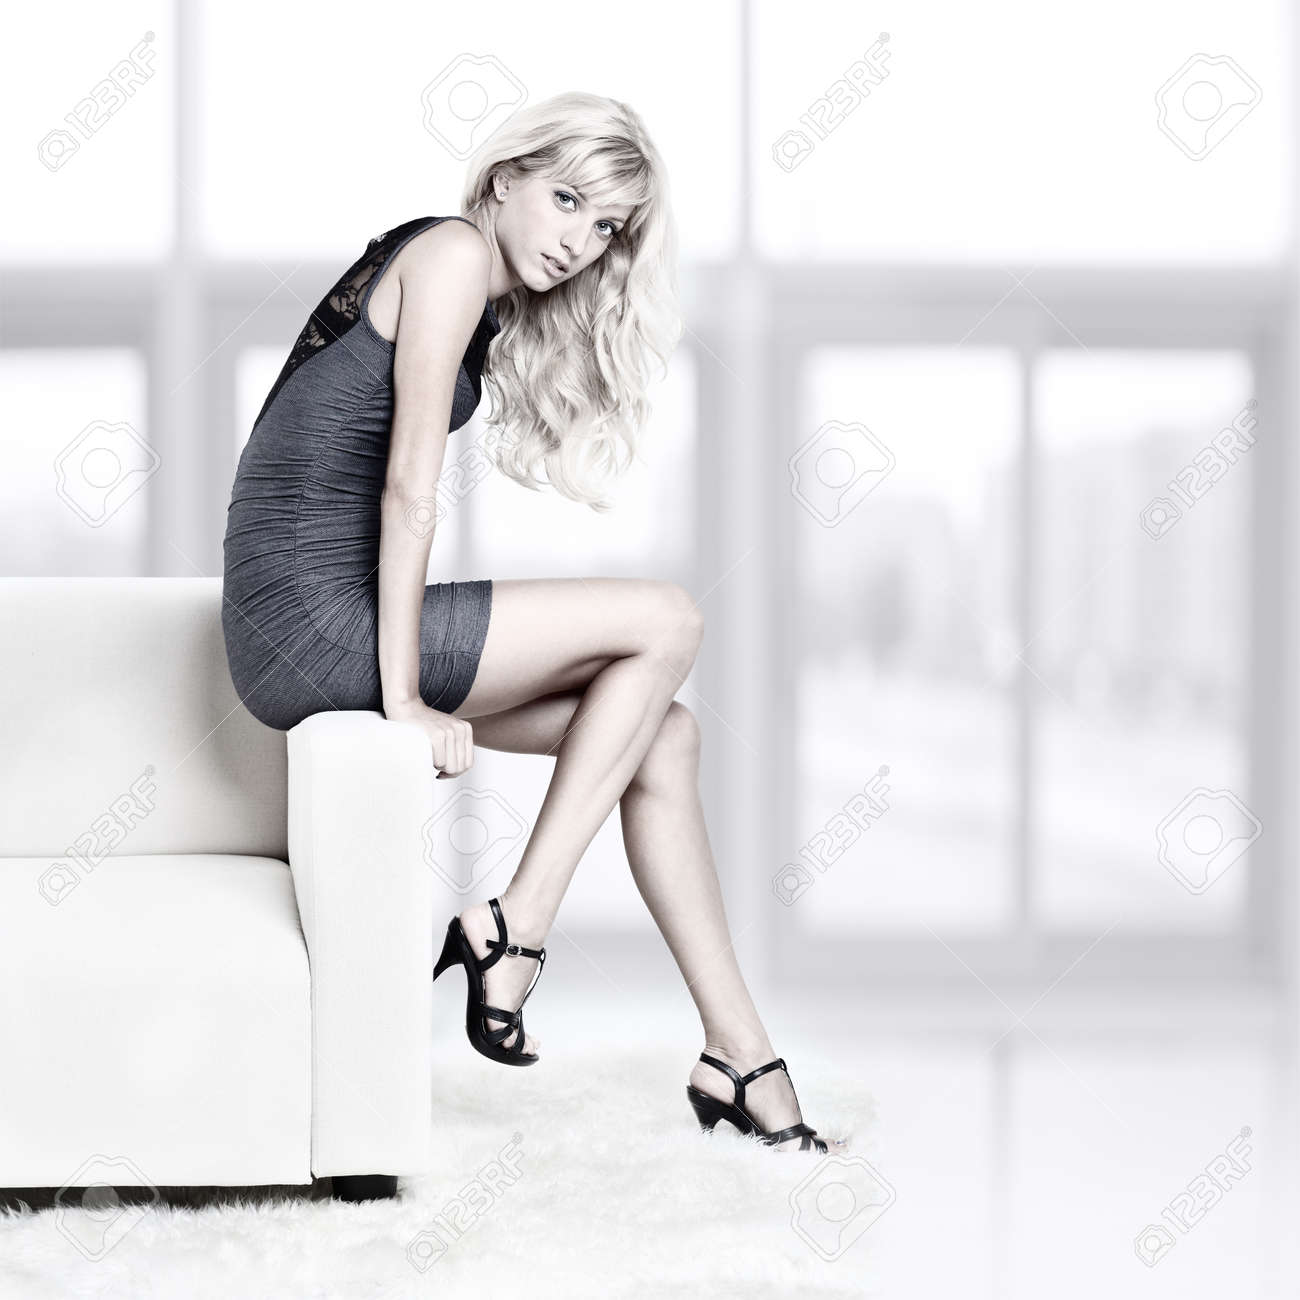 full-length portrait of beautiful young blond woman on couch with white furs on floor Stock Photo - 12106036